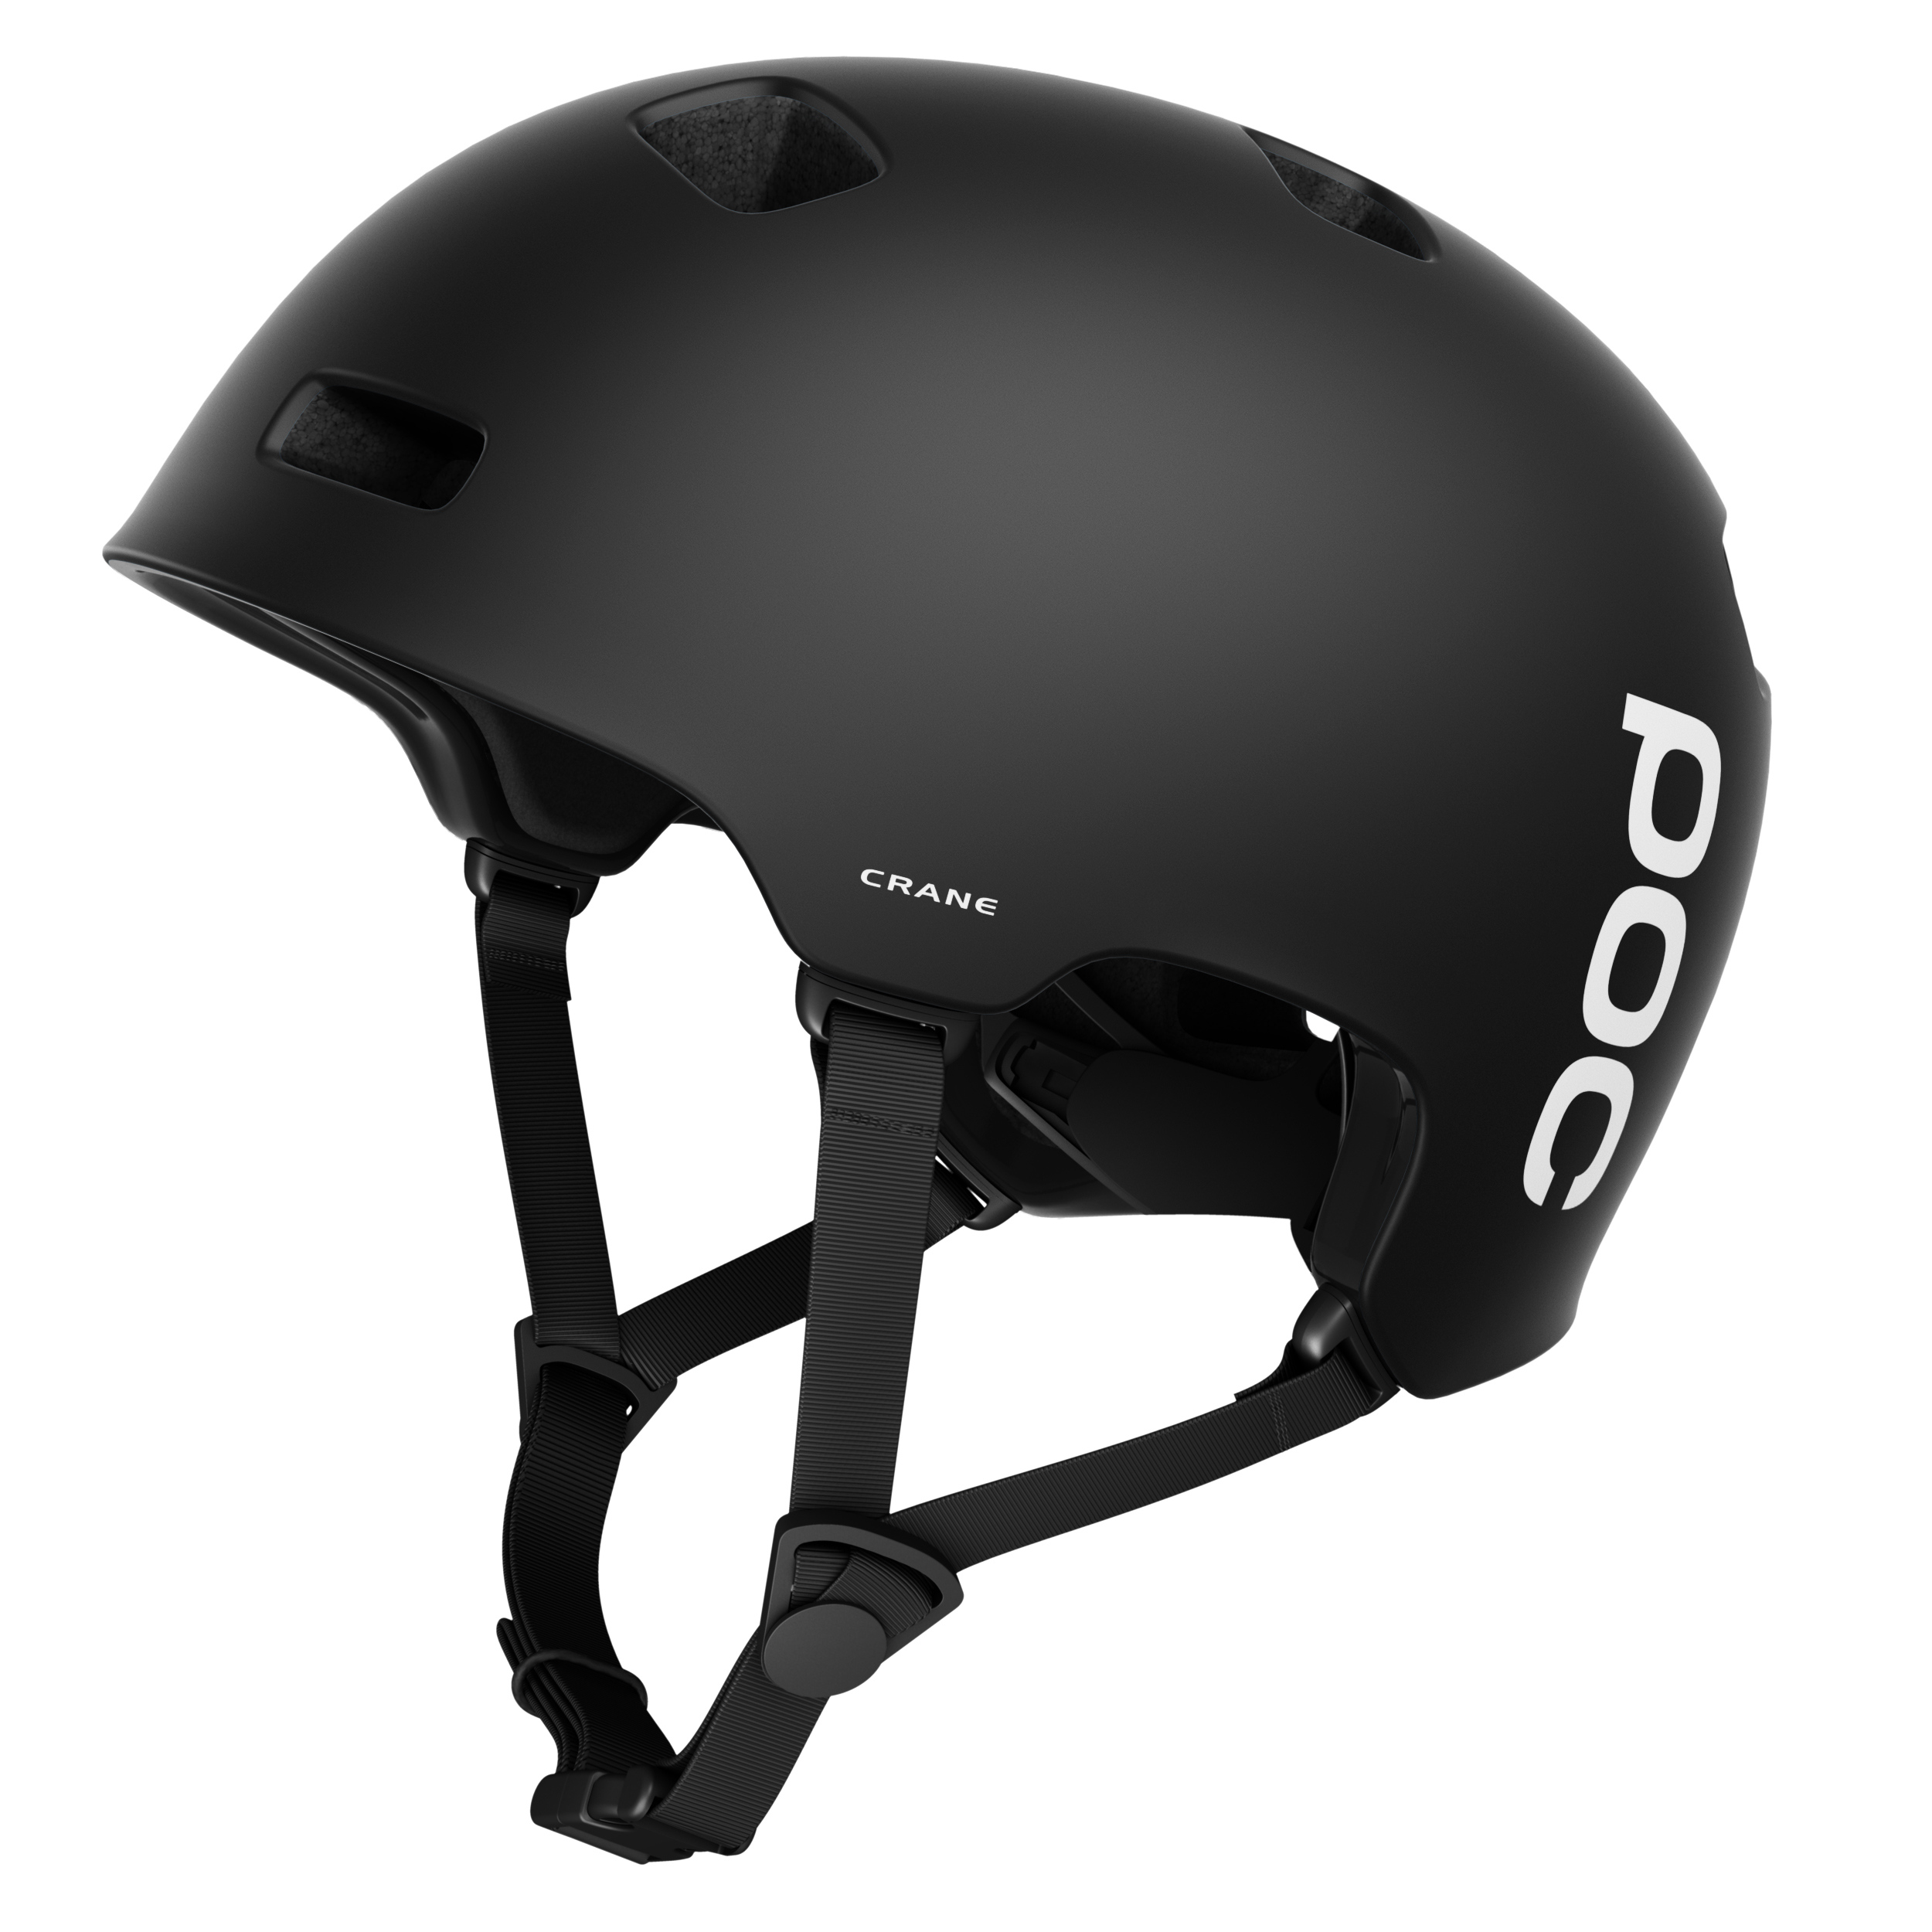 CRANE - The award winning Crane is a lightweight helmet with a durable and dent resistant construction where POC has implemented a new kind of liner, combining two different densities.